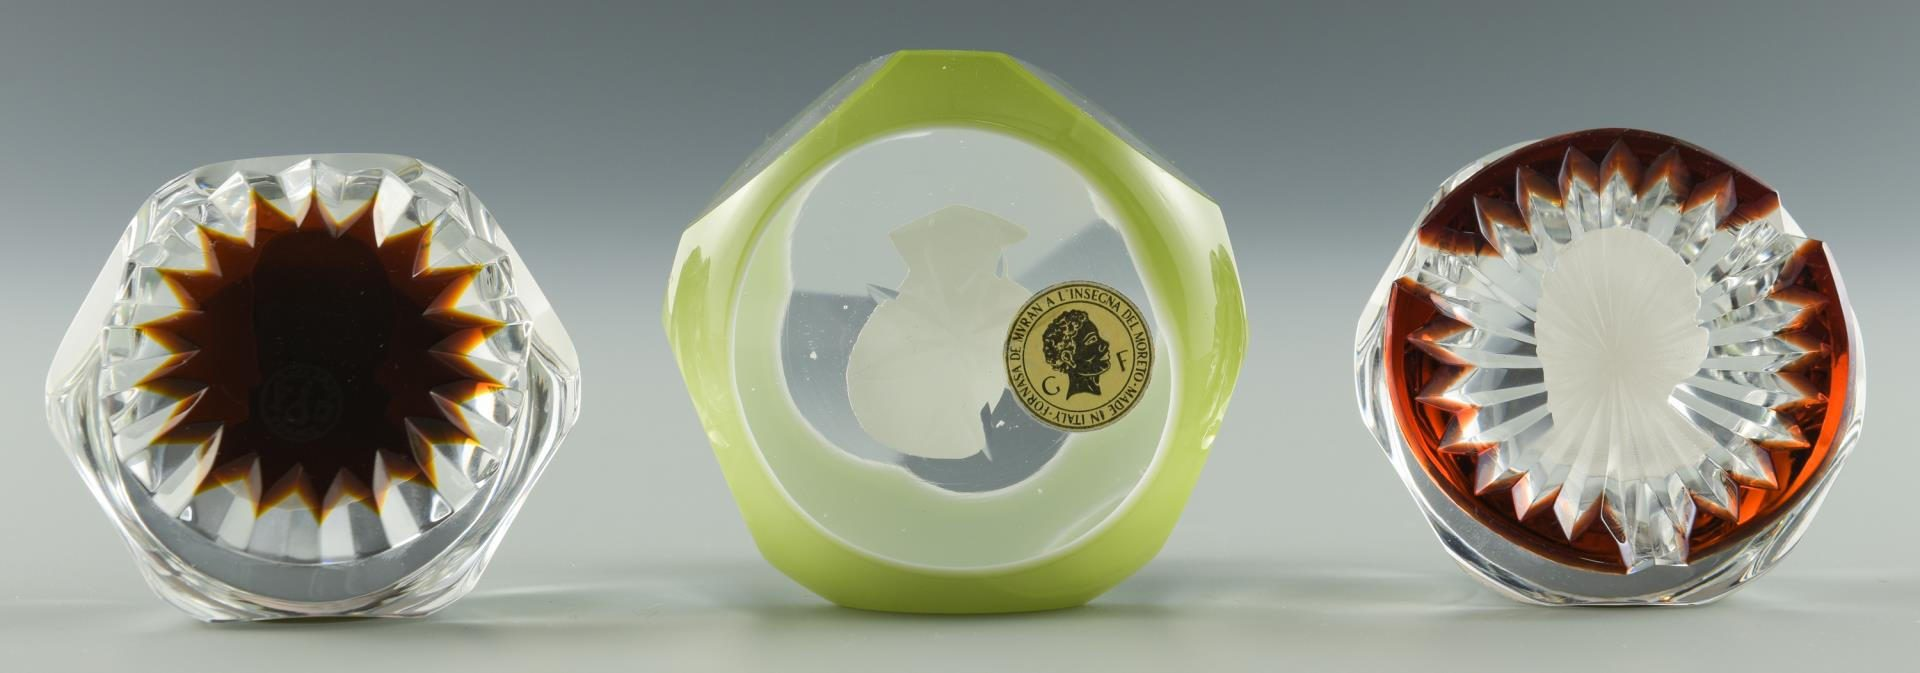 Lot 205: 3 Cameo Paperweights, Incl. Baccarat